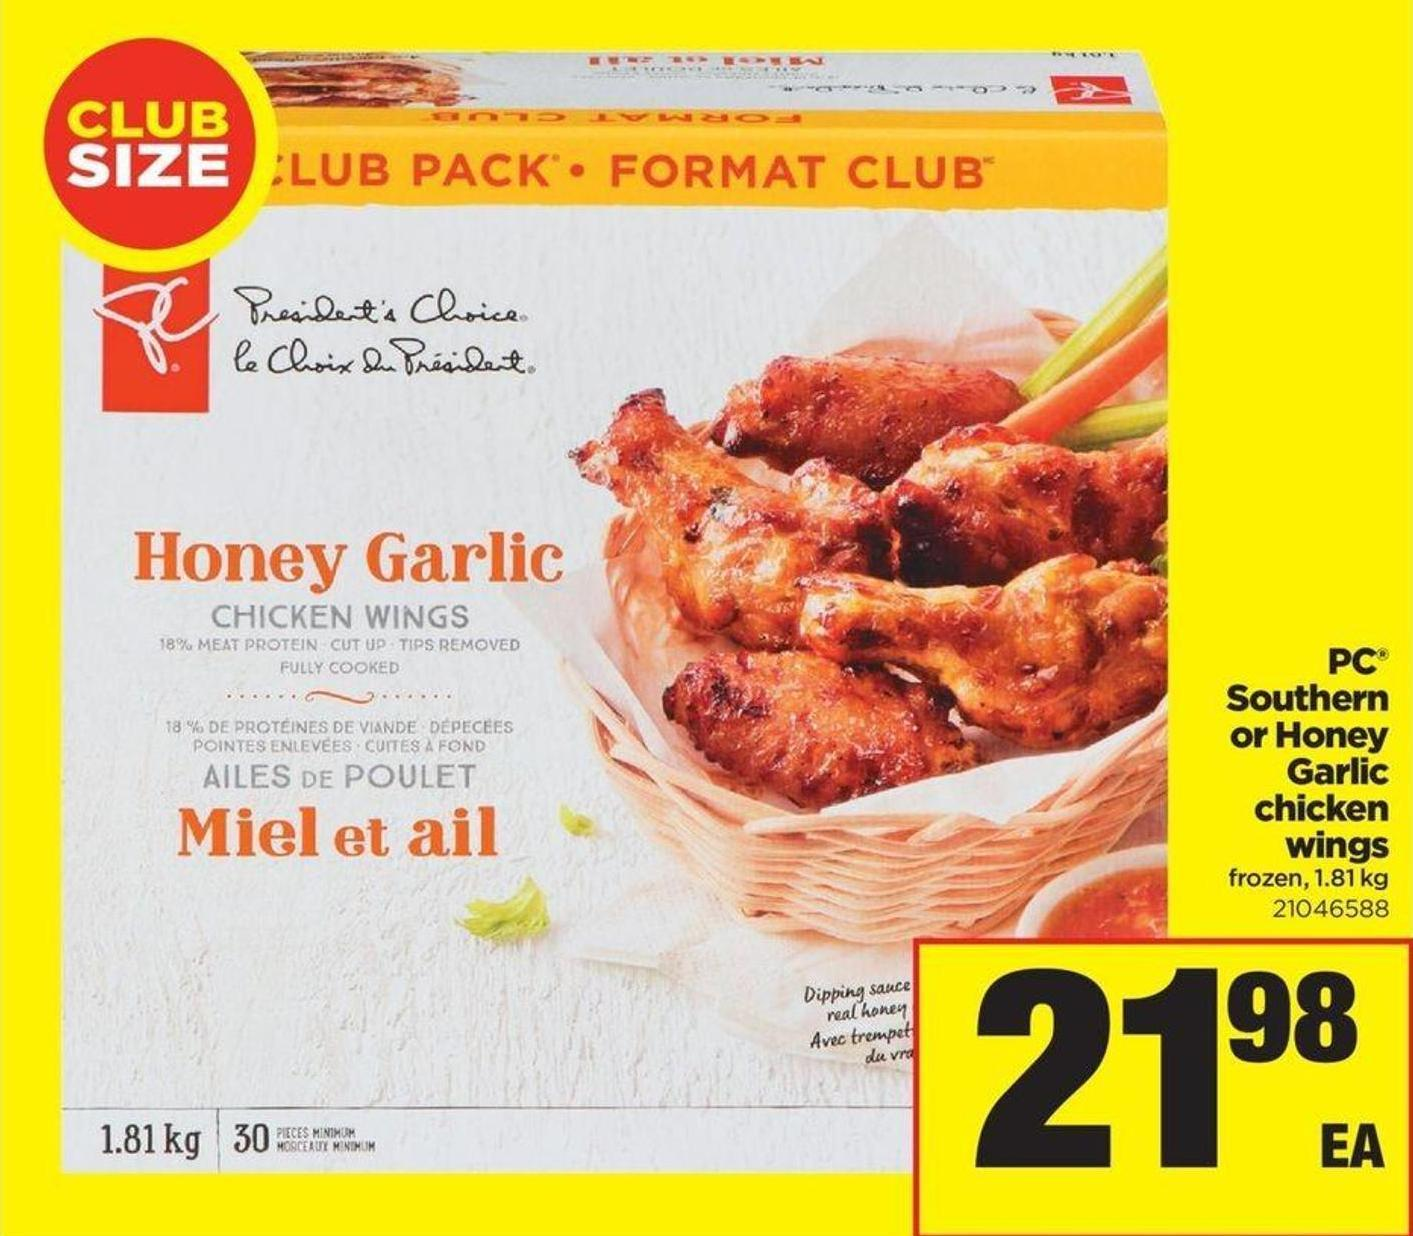 PC Southern Or Honey Garlic Chicken Wings - 1.81 Kg